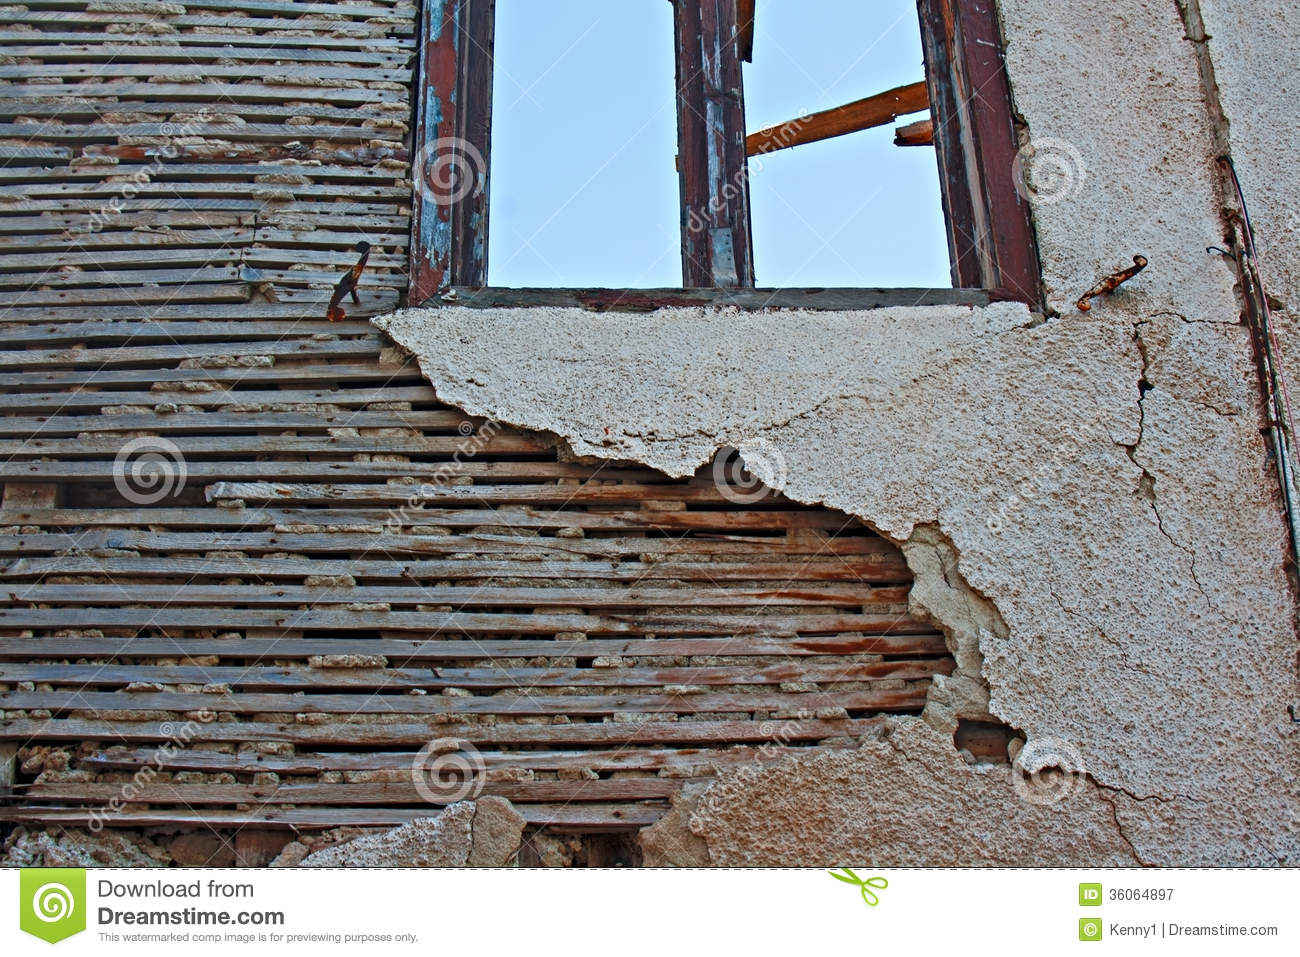 Lath And Plaster : Old lath and plaster on derelict building stock image